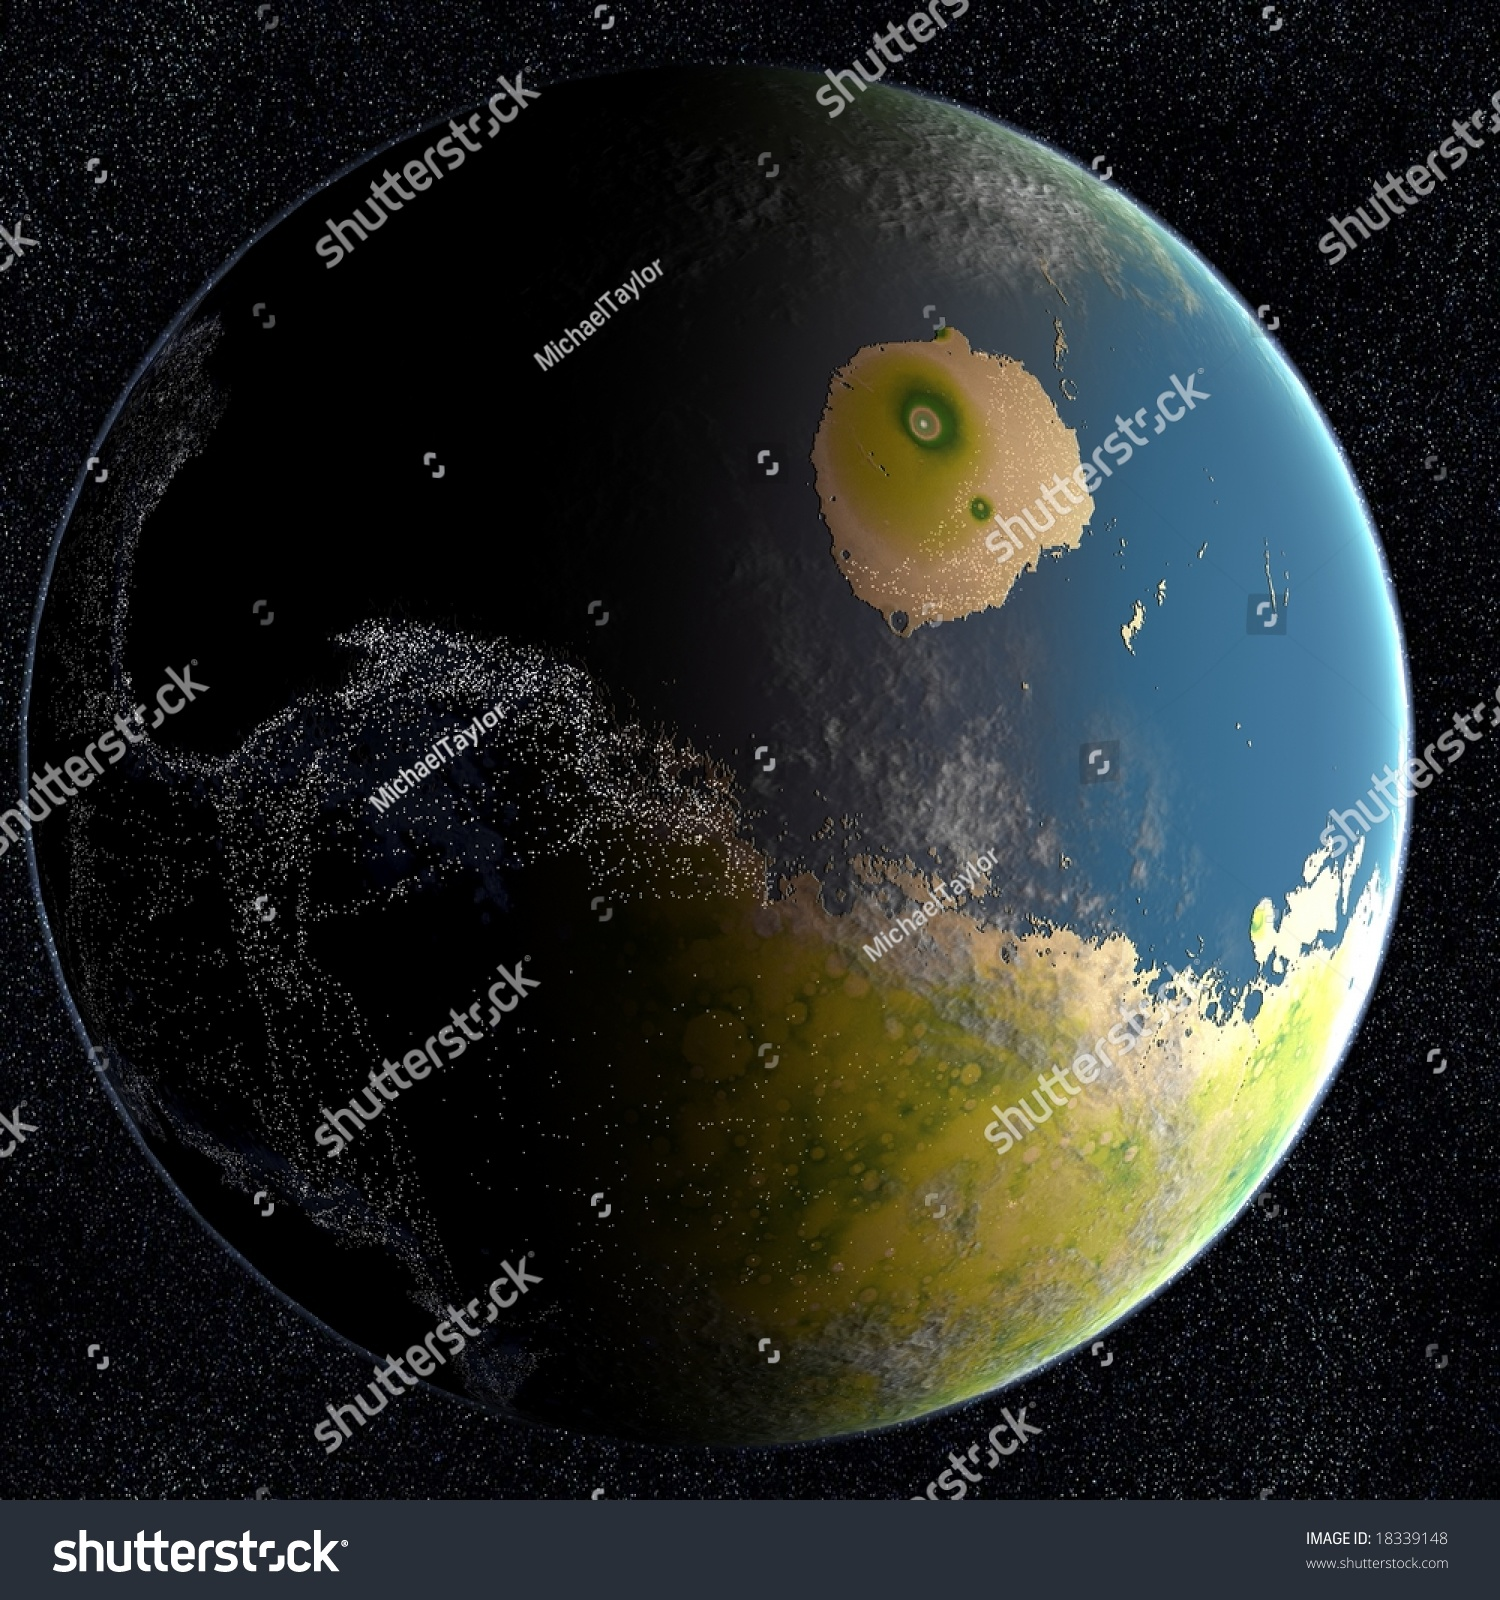 terraform mars planet - photo #33